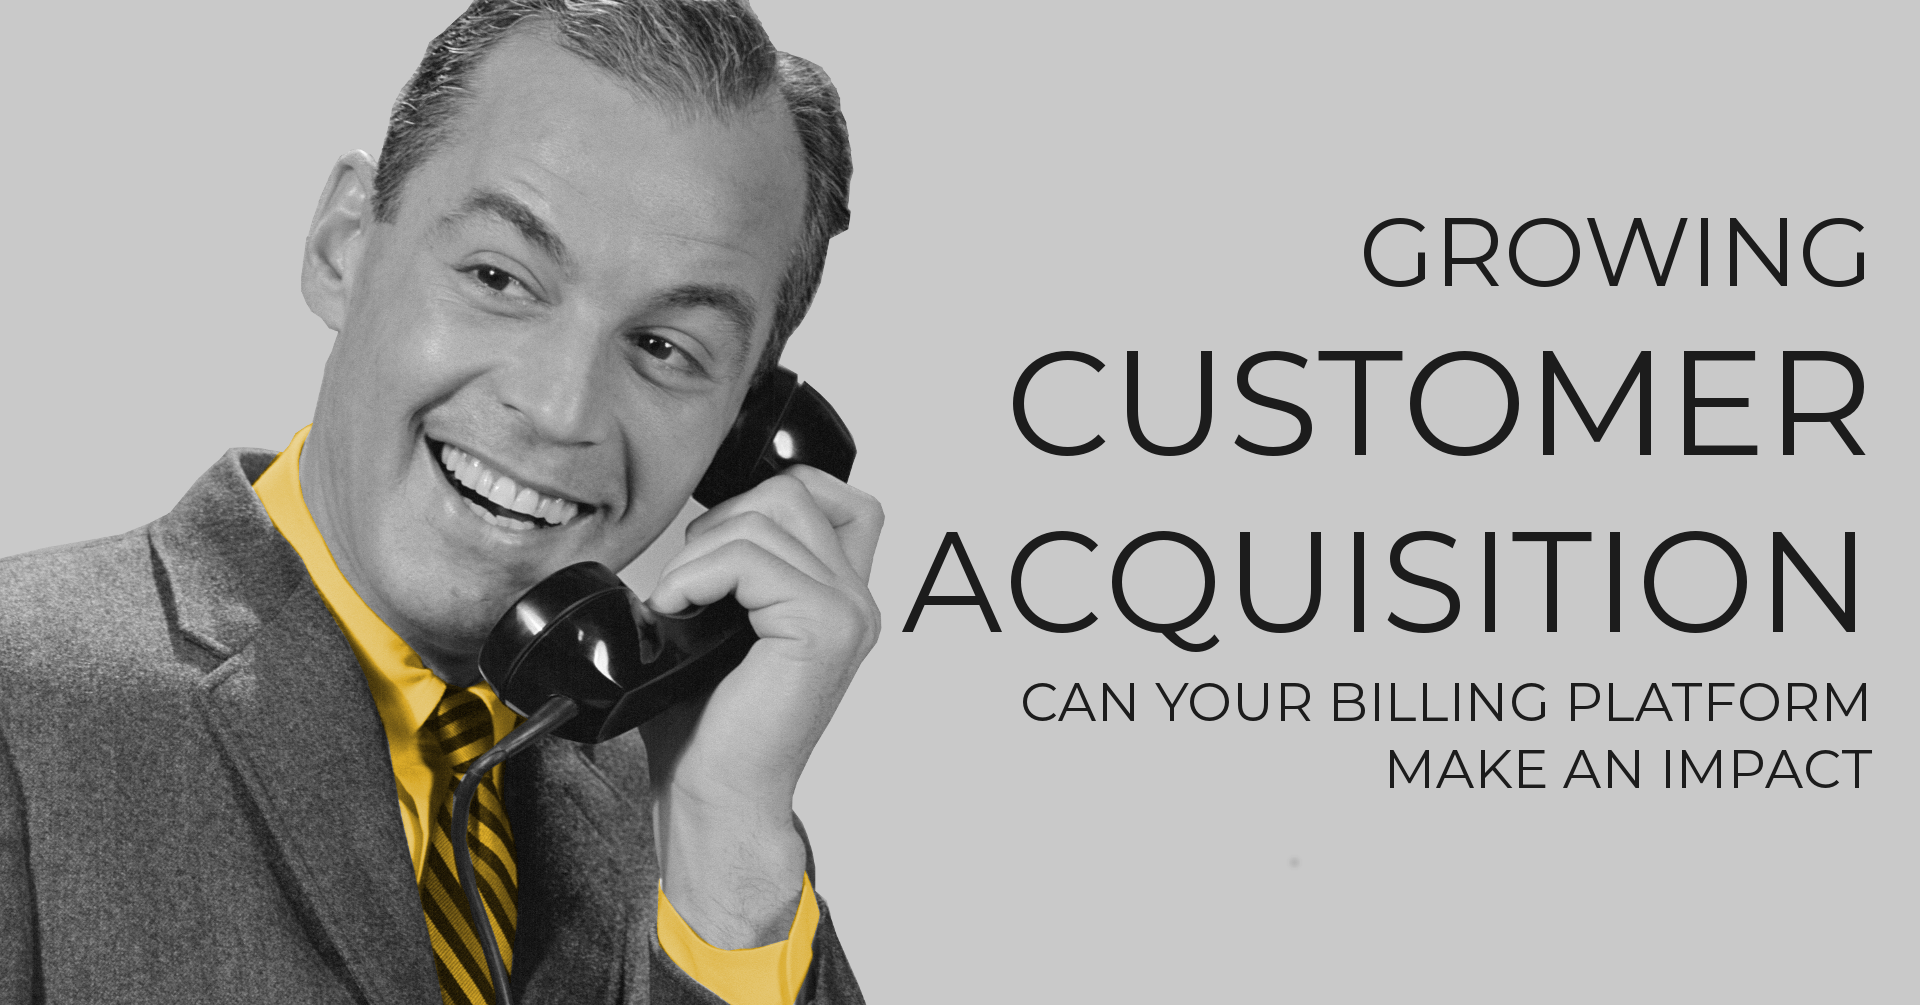 Growing Customer Acquisition: Can Your Billing Platform Make an Impact?